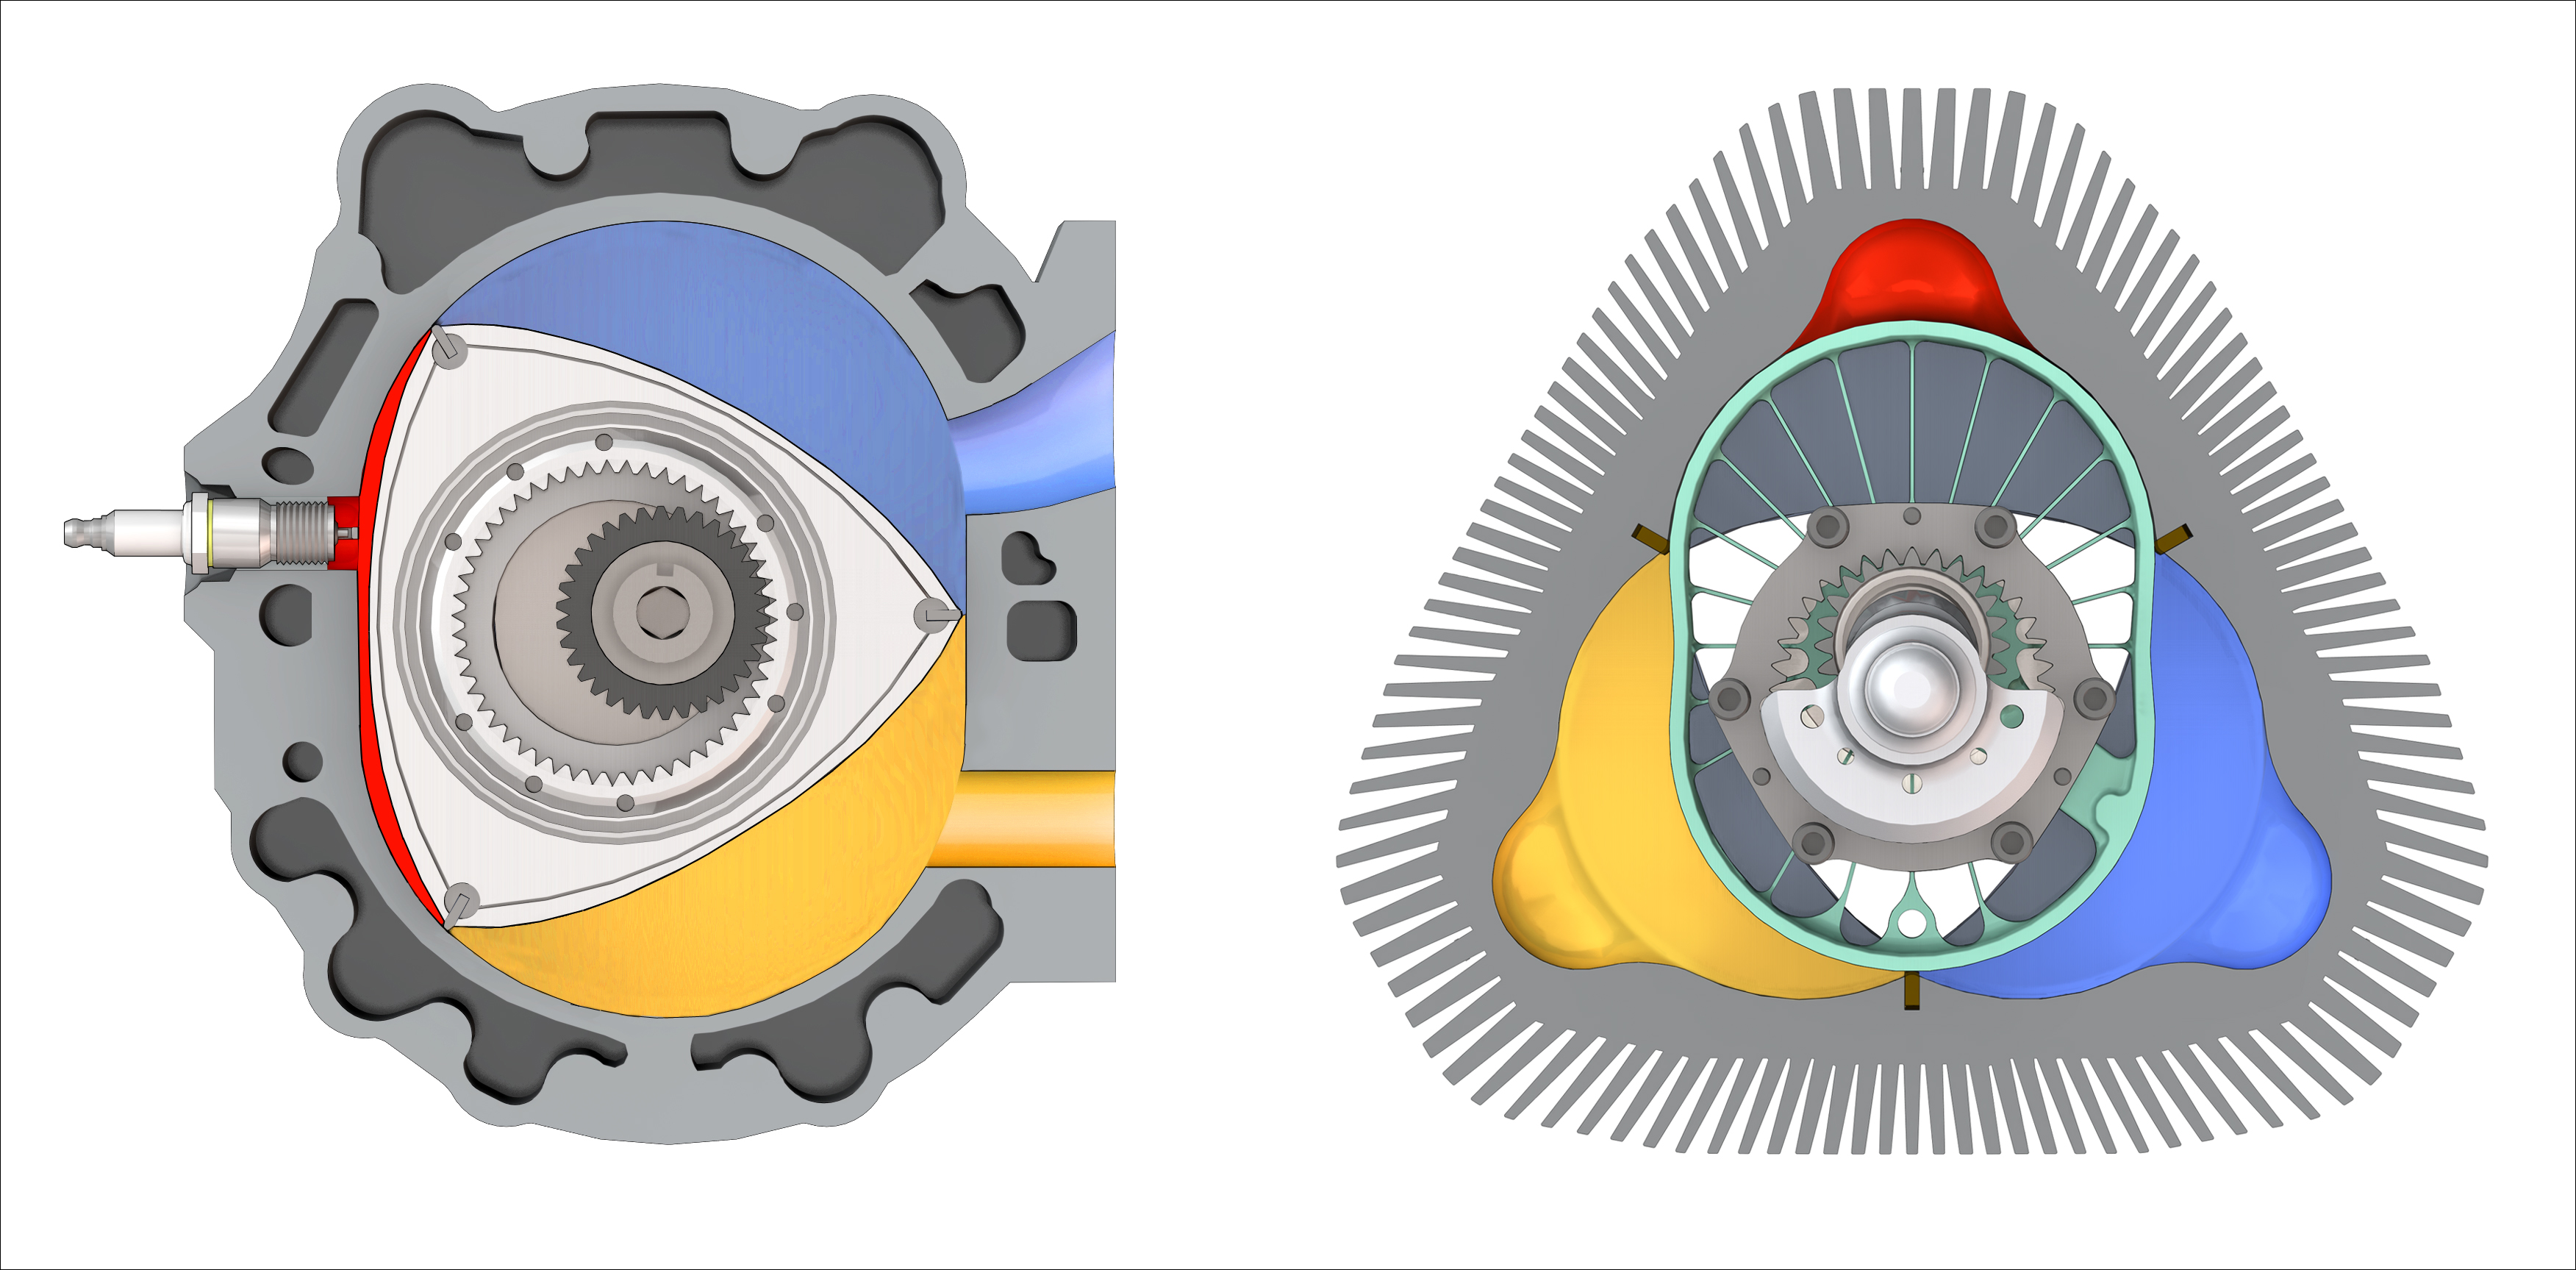 Sae World Congress >> LiquidPiston to Present Next-Generation Rotary Engine at SAE World Congress Experience